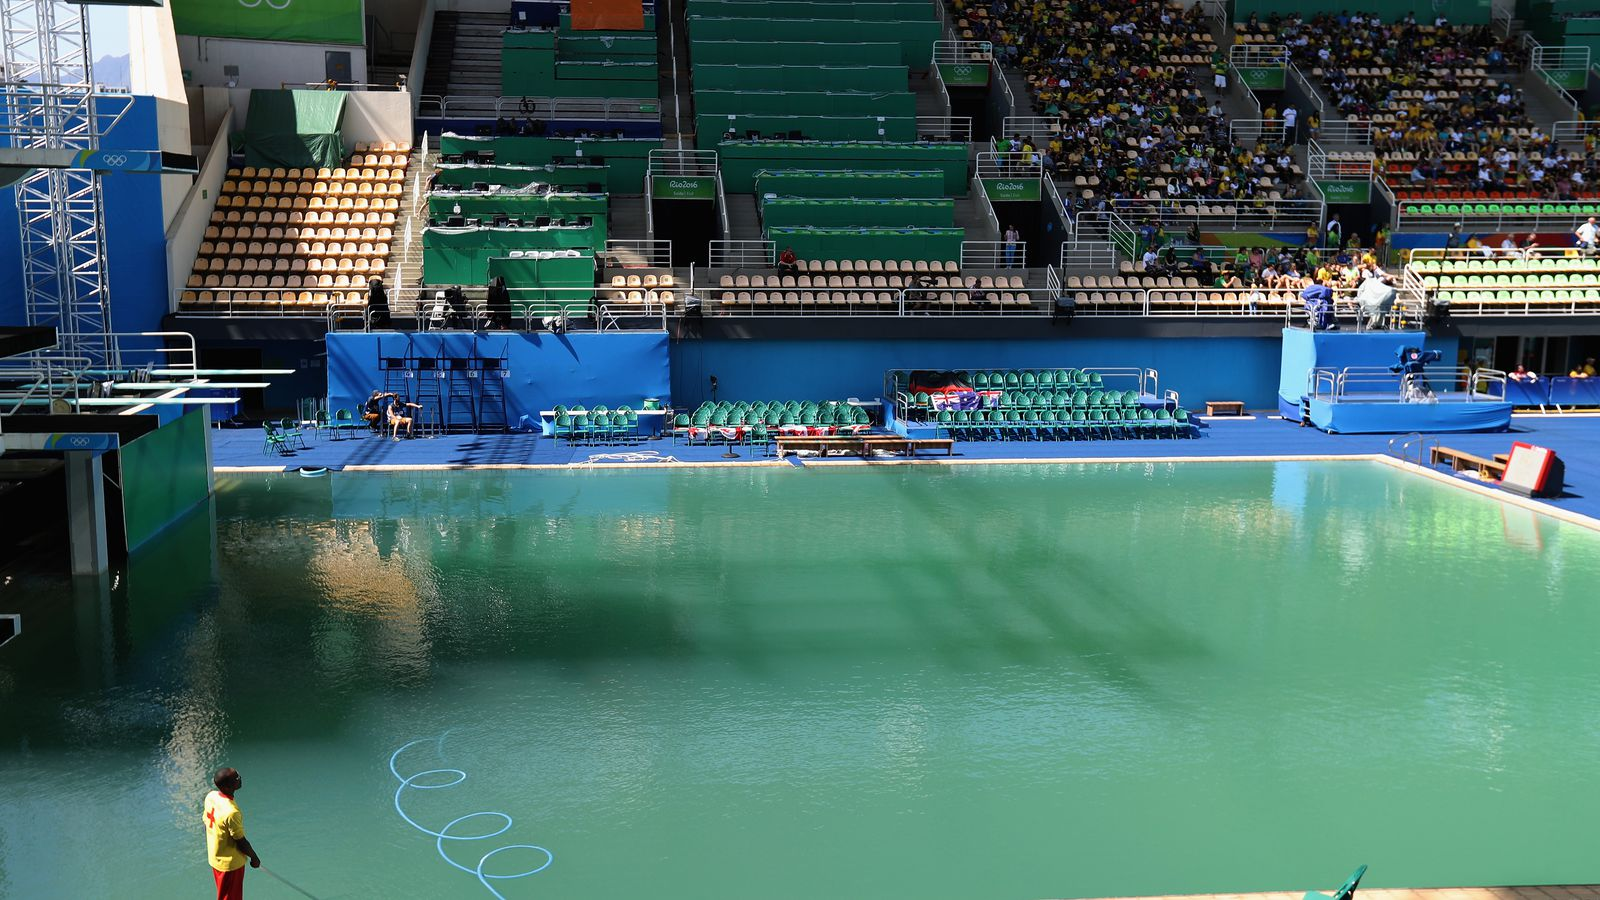 Rio Organizers Explain Why The Olympic Diving Pool Turned Green And It Makes Them Sound Pretty